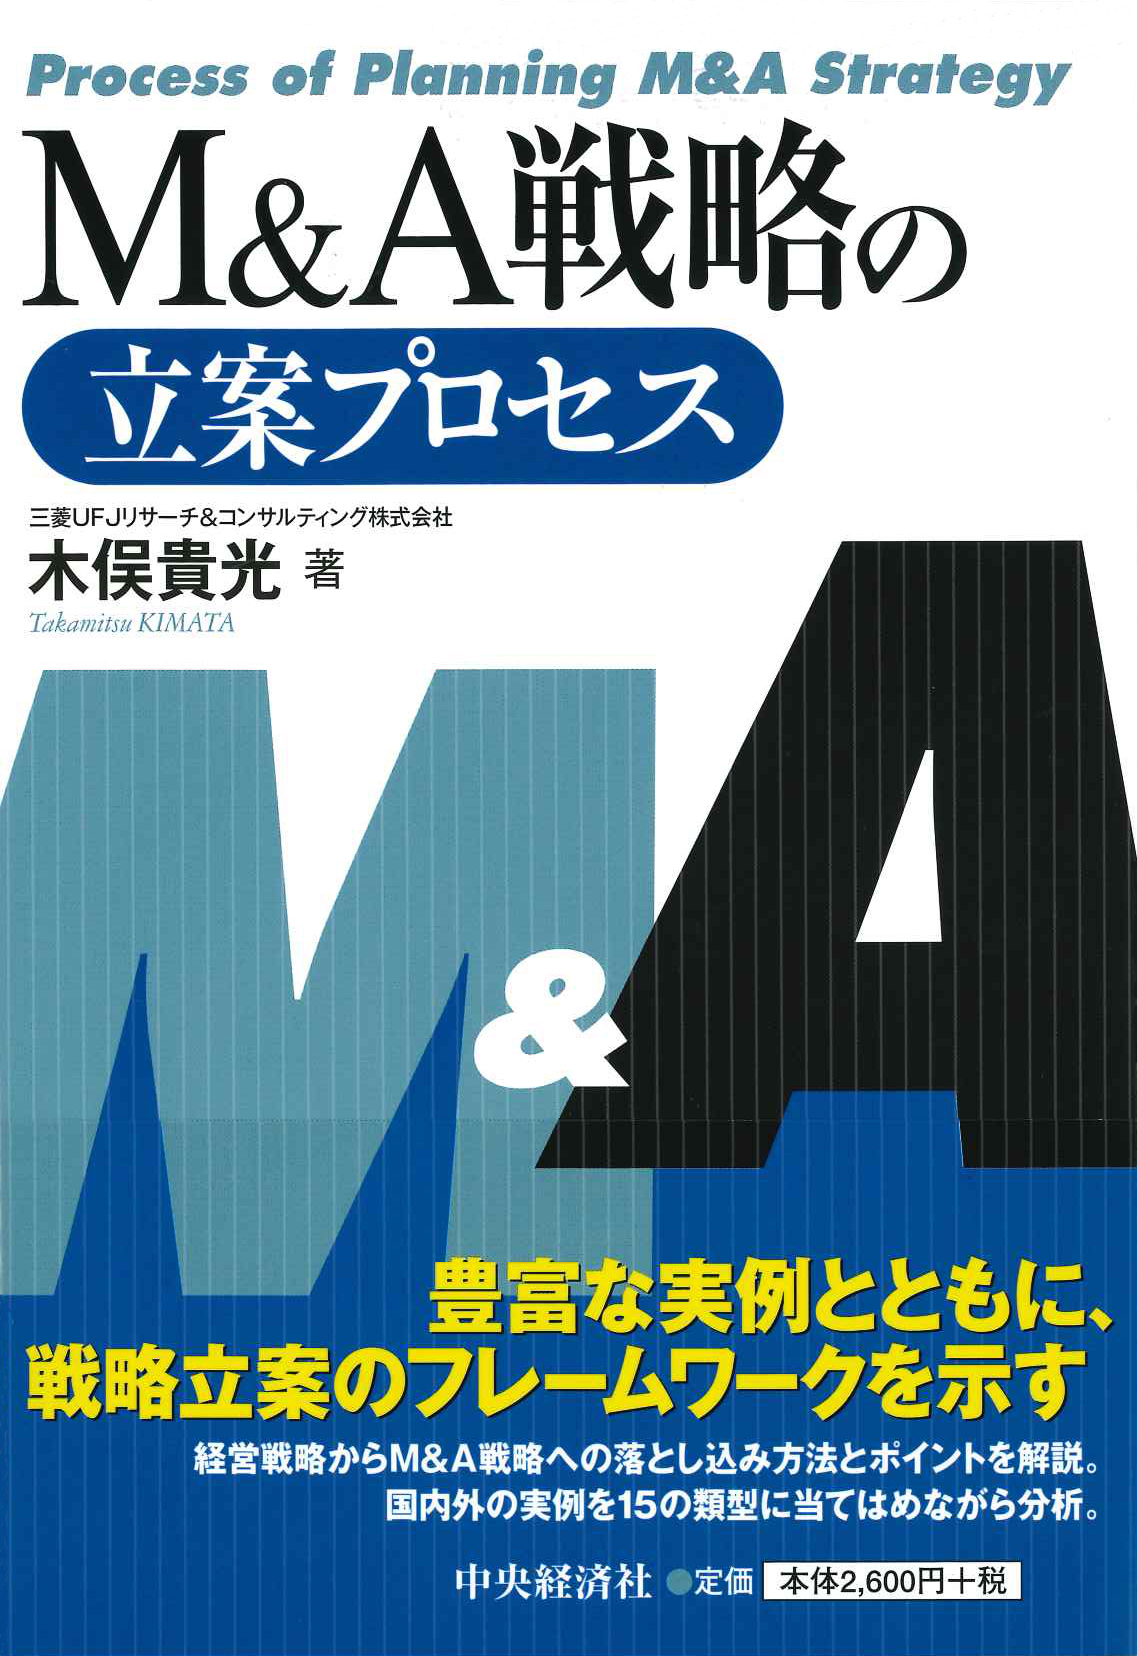 M&A戦略の立案プロセス